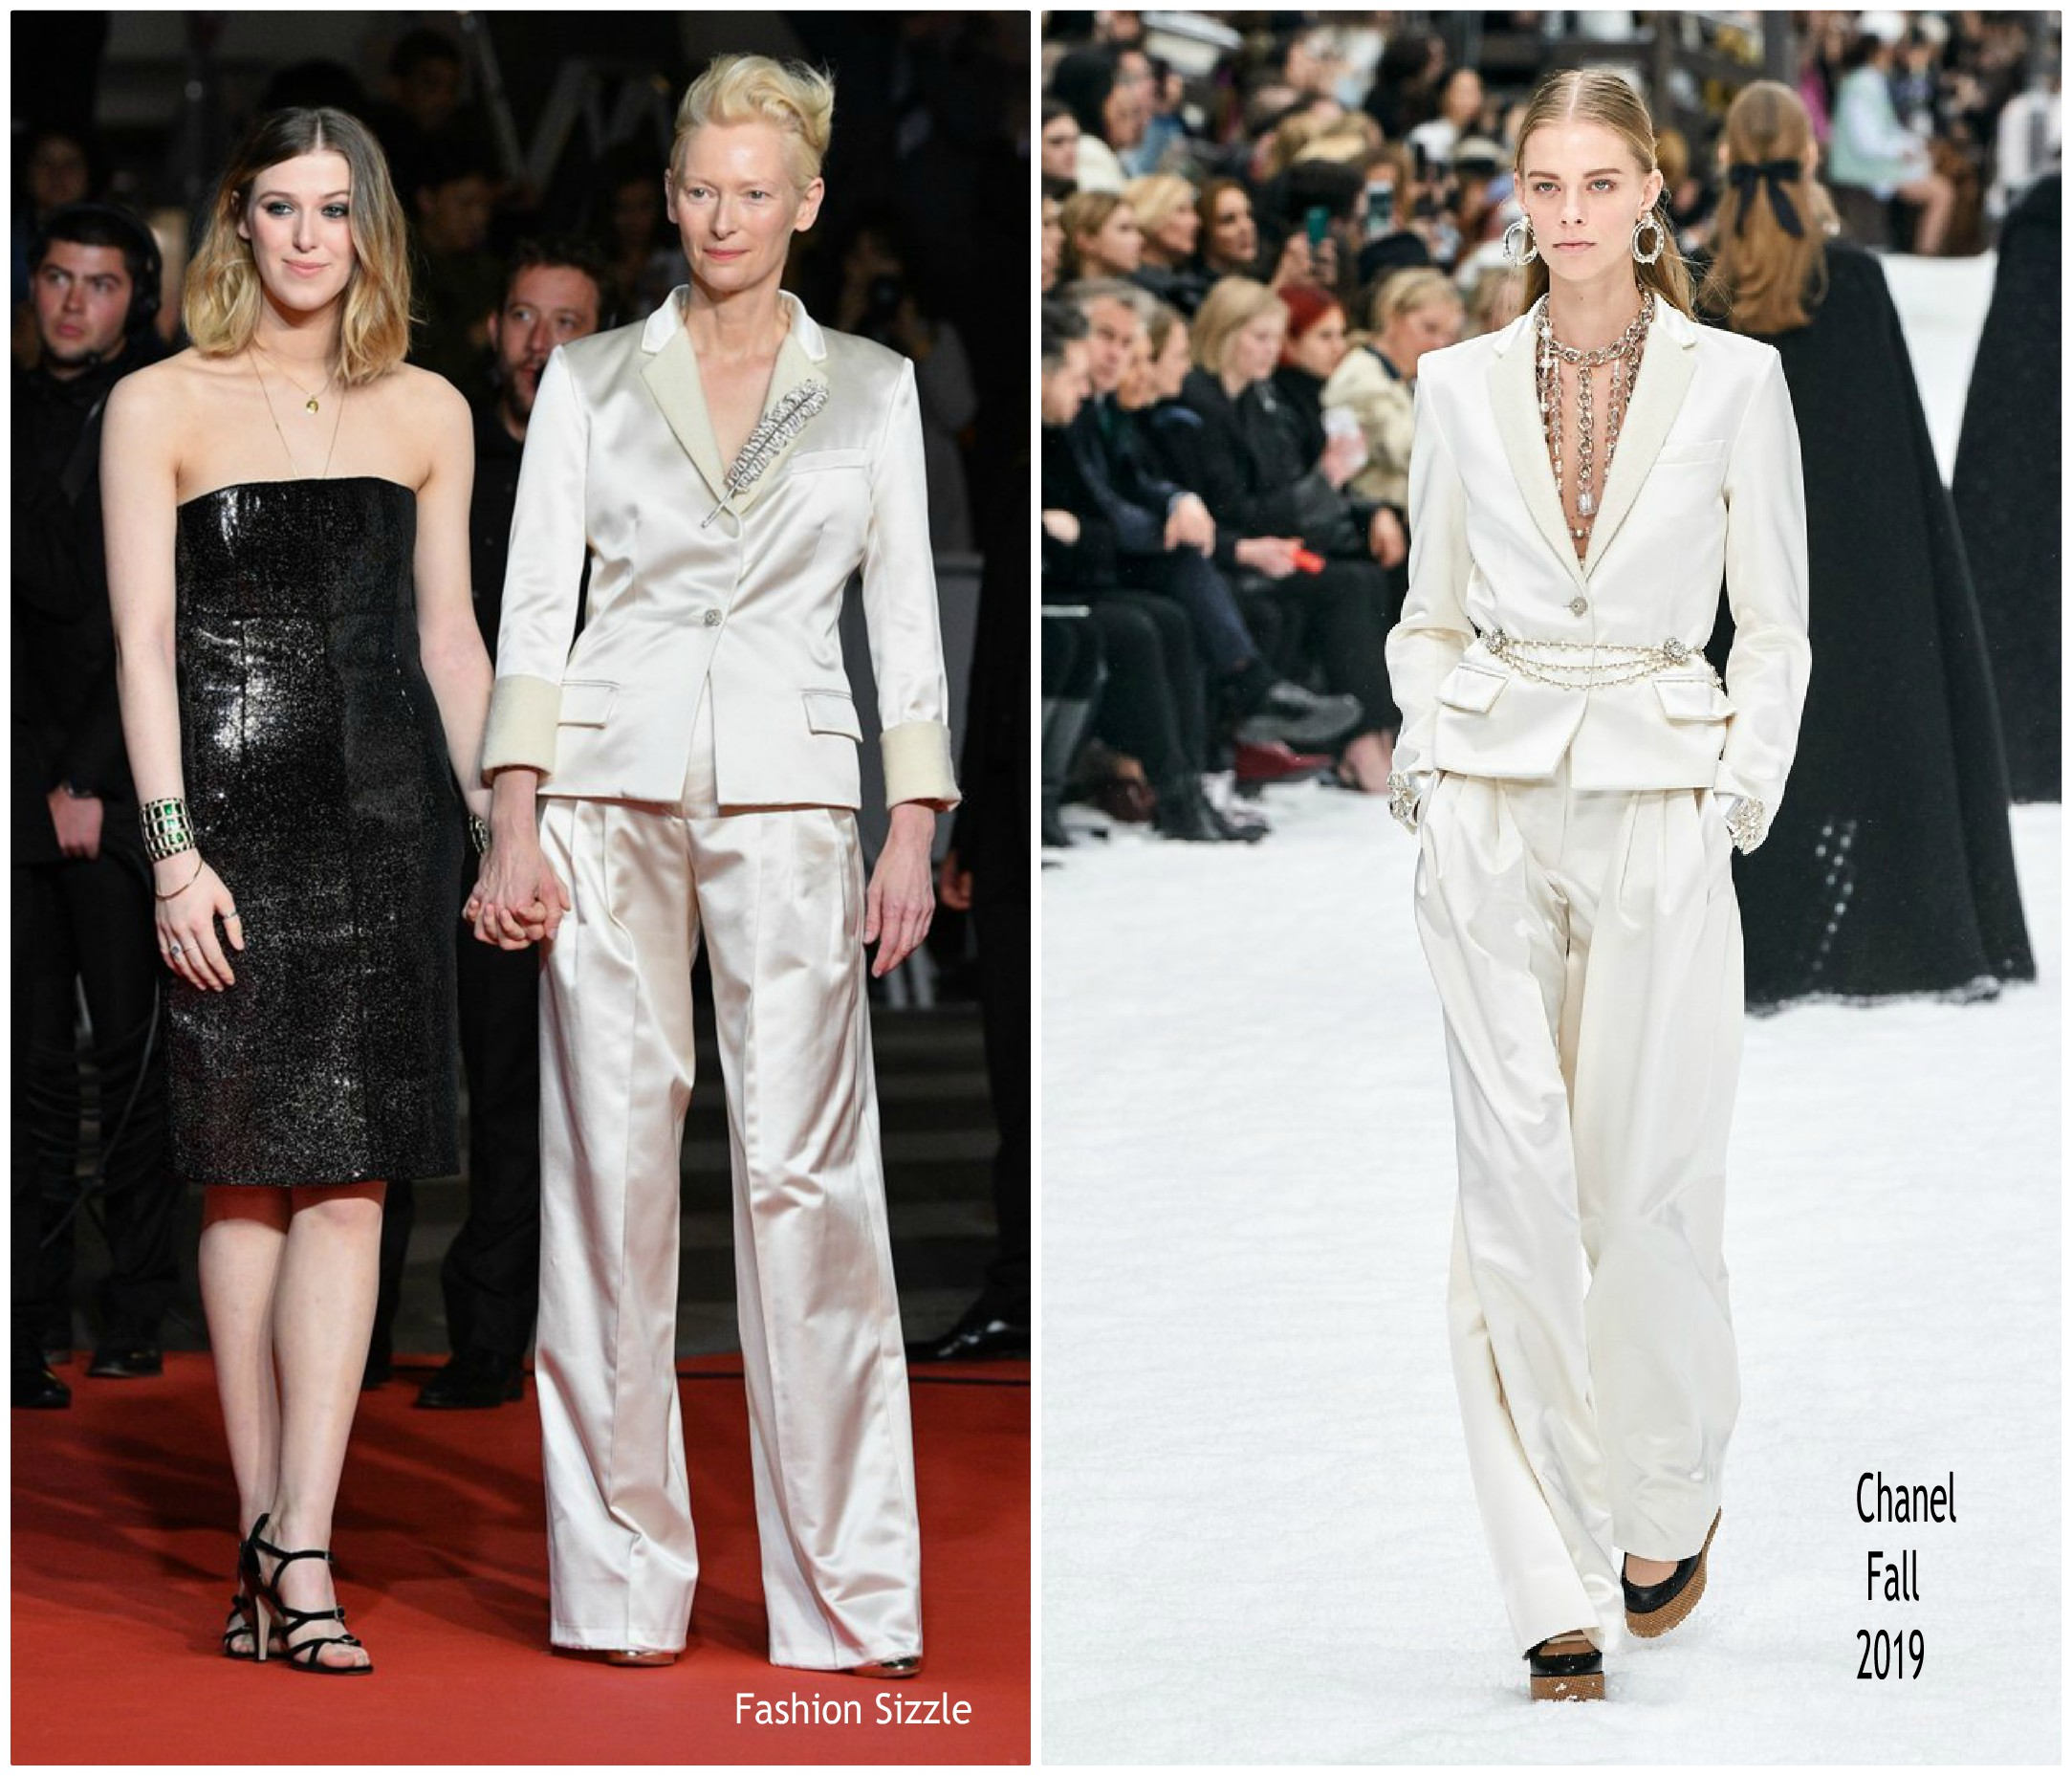 tilda-swinton-in-chanel-parasite-cannes-film-festival-premiere